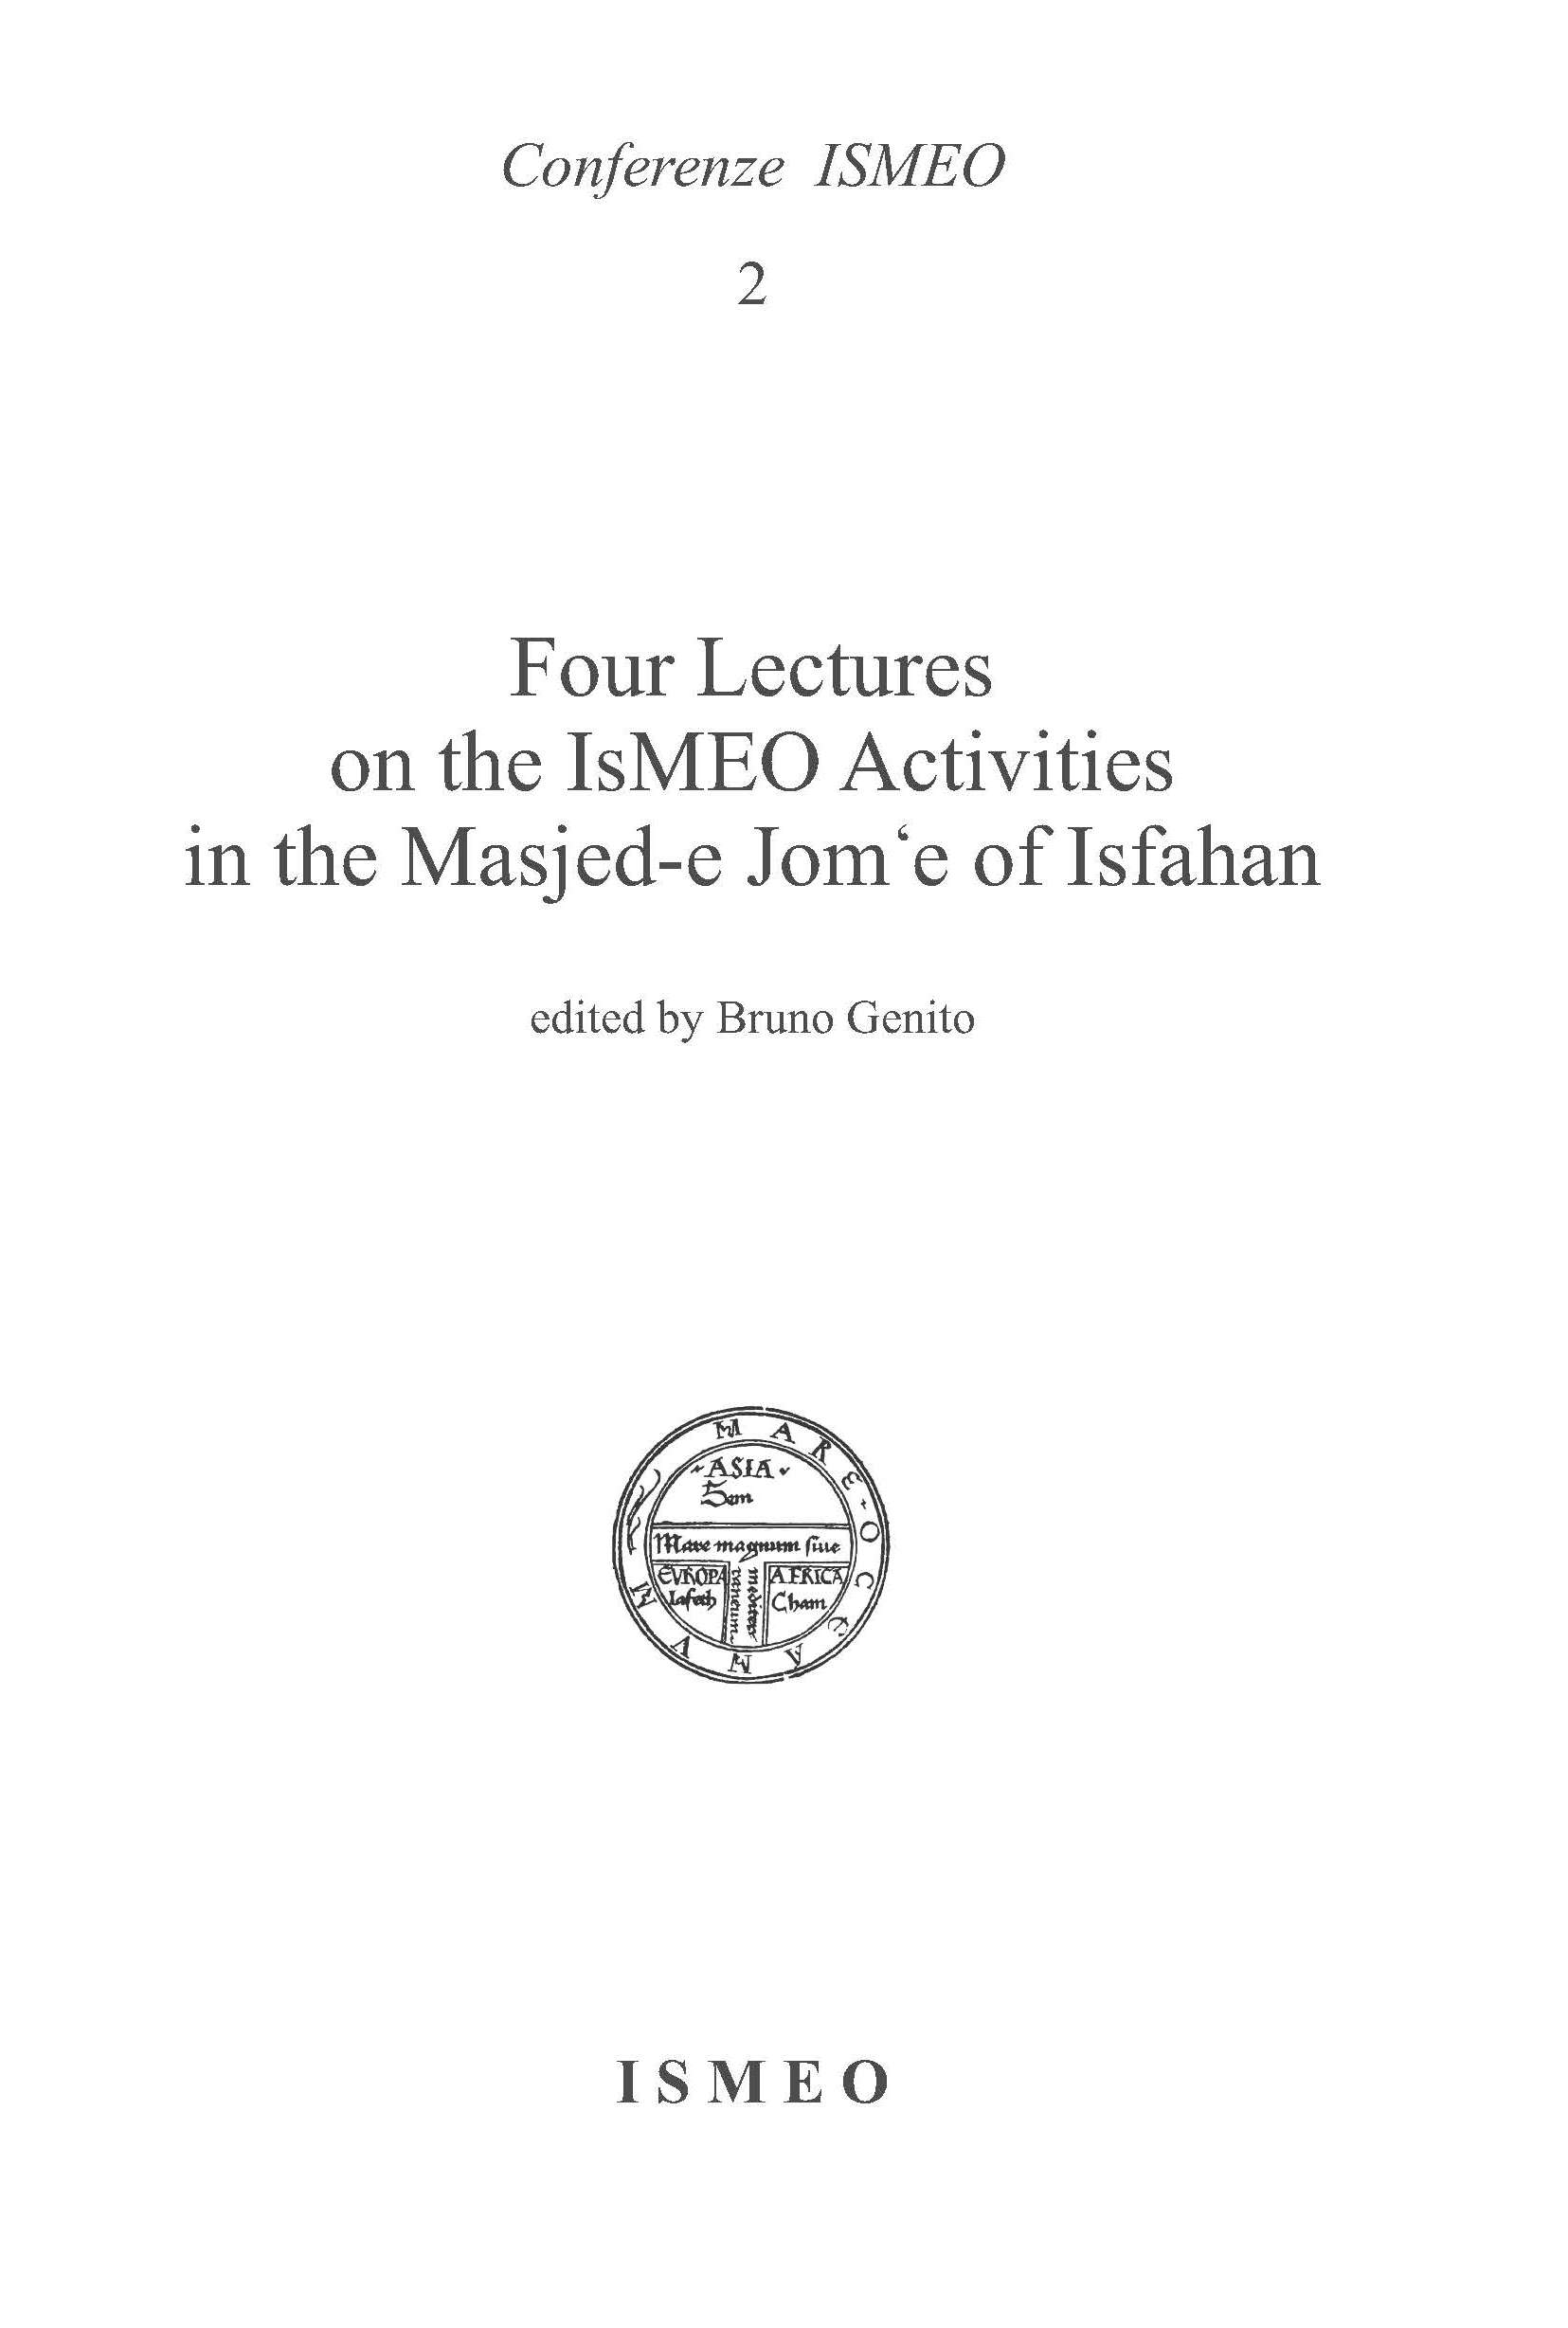 Four Lectures on the ISMEO Activities